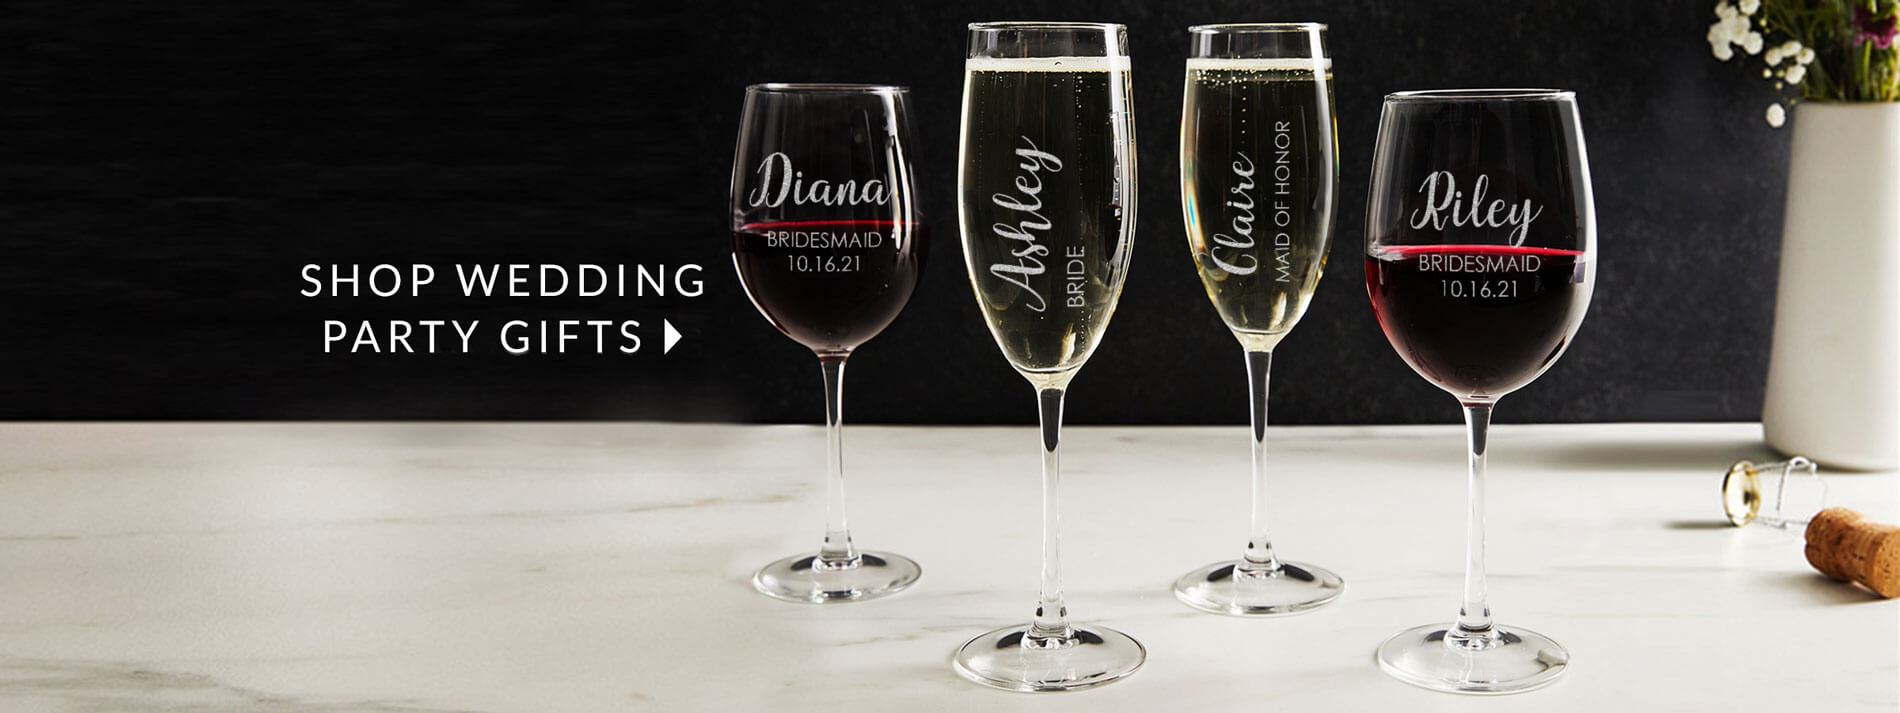 SHOP WEDDING PARTY GIFTS